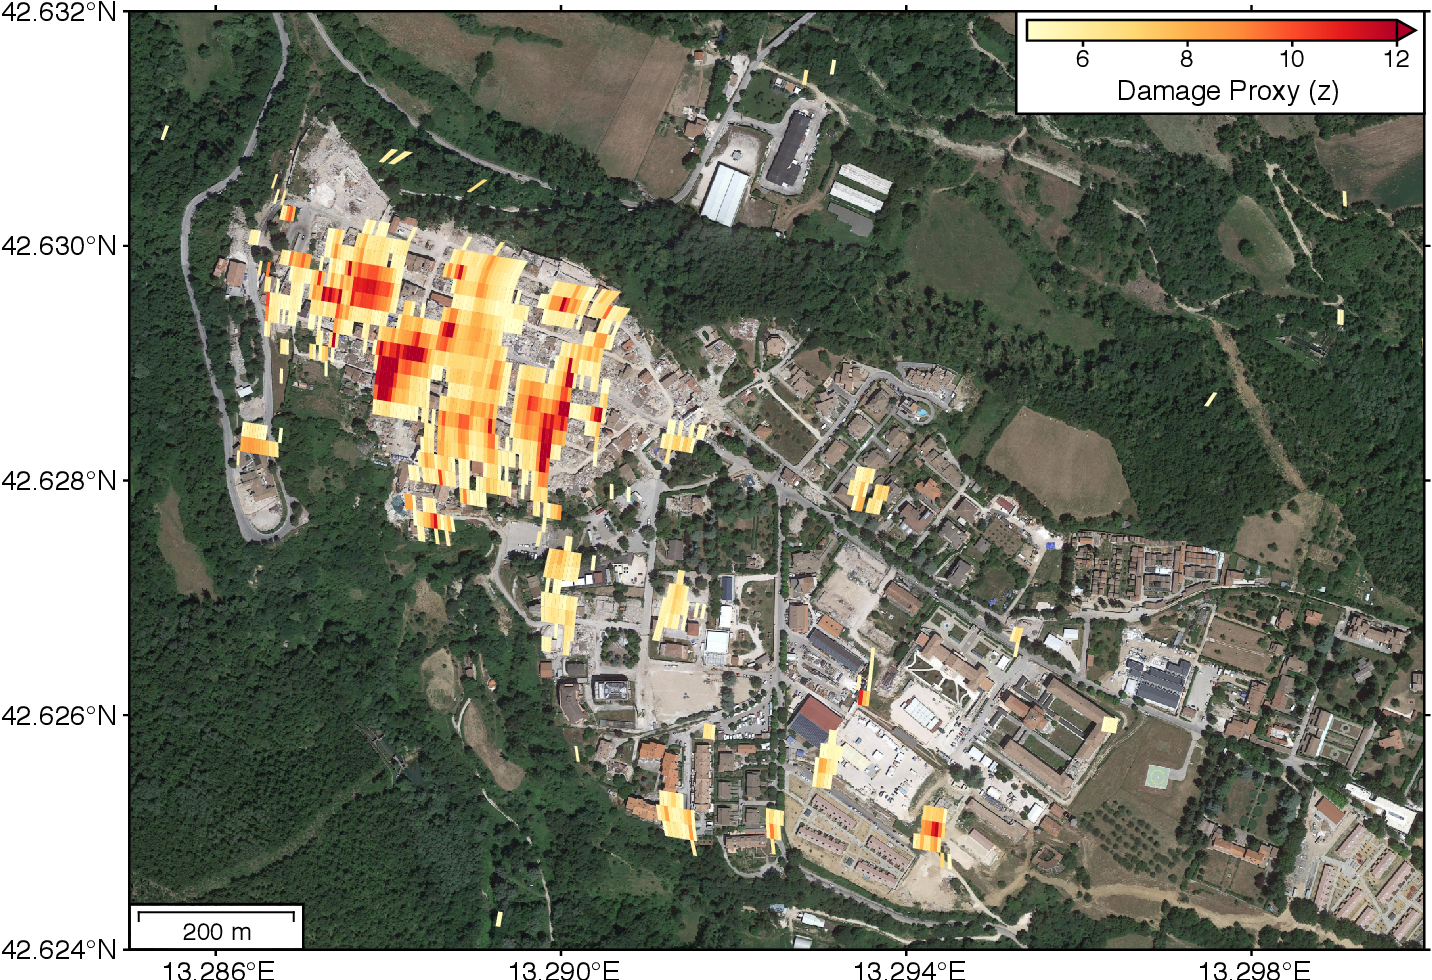 Figure 3 for Deep Learning-based Damage Mapping with InSAR Coherence Time Series